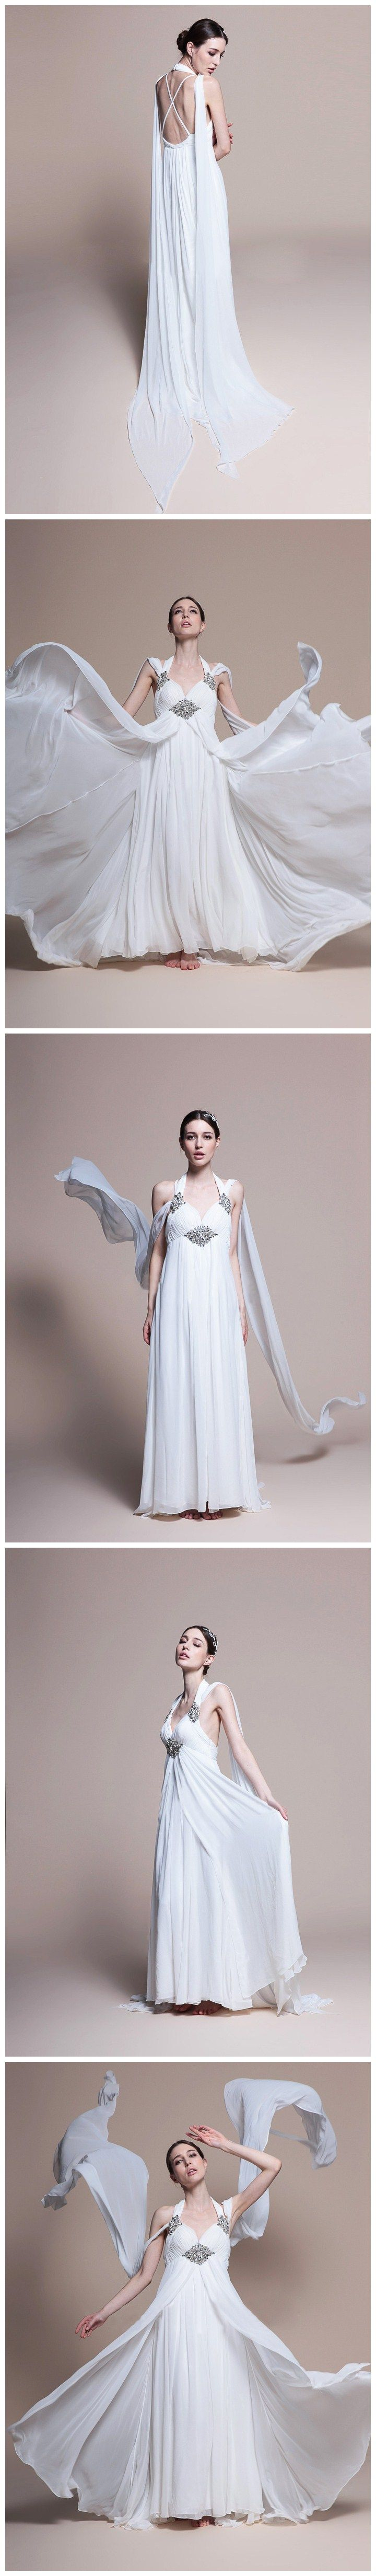 Greek goddess with amazing dress draping also perfect for a wedding dress